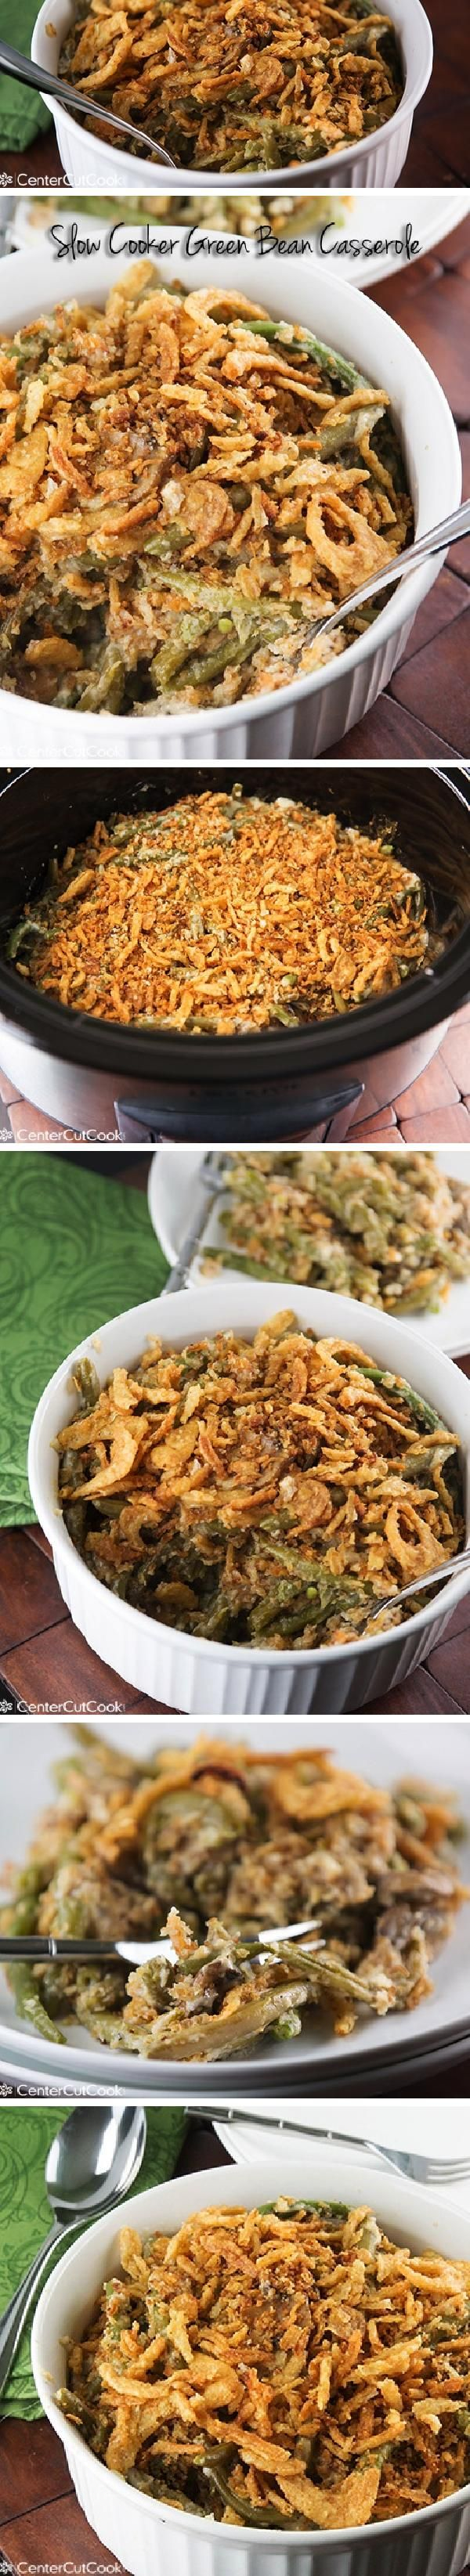 SLOW COOKER GREEN BEAN CASSEROLE made from scratch with fresh or frozen beans, a homemade cream sauce (no cream soup!), cheese, and topped with French's French Fried Onions. This is the best Green Bean Casserole!